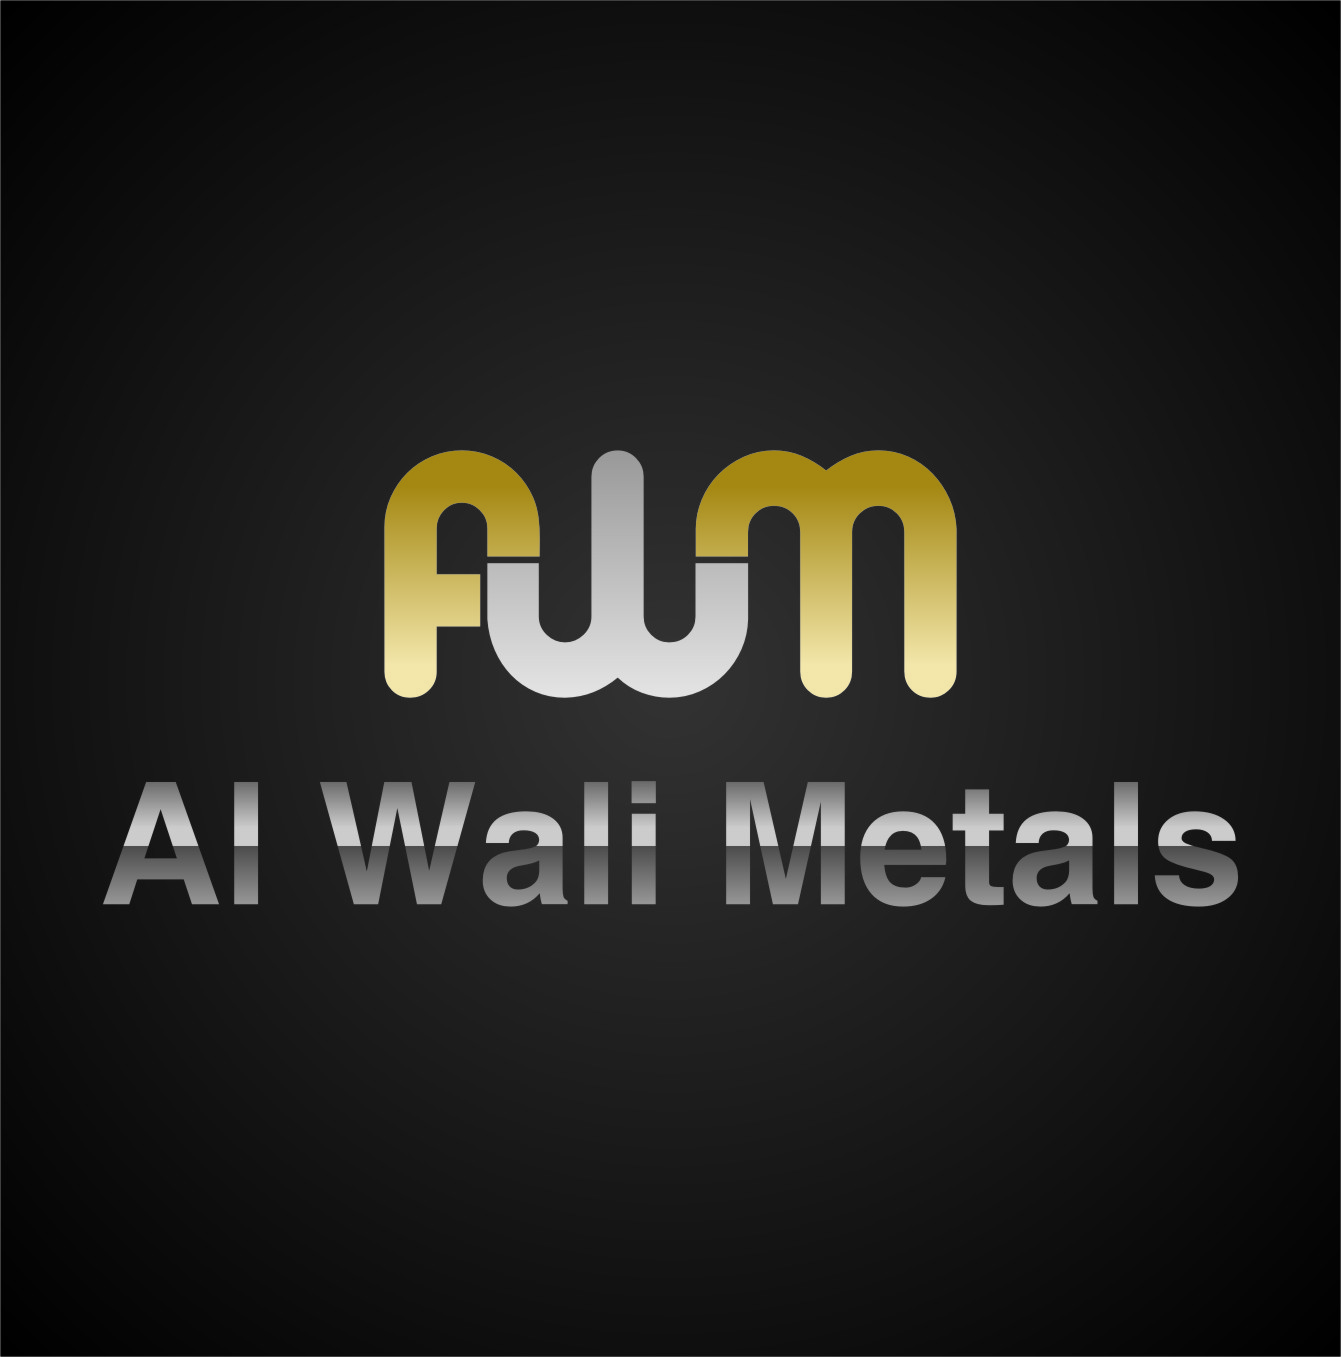 Logo Design by RasYa Muhammad Athaya - Entry No. 111 in the Logo Design Contest Inspiring Logo Design for Al Wali Metals.